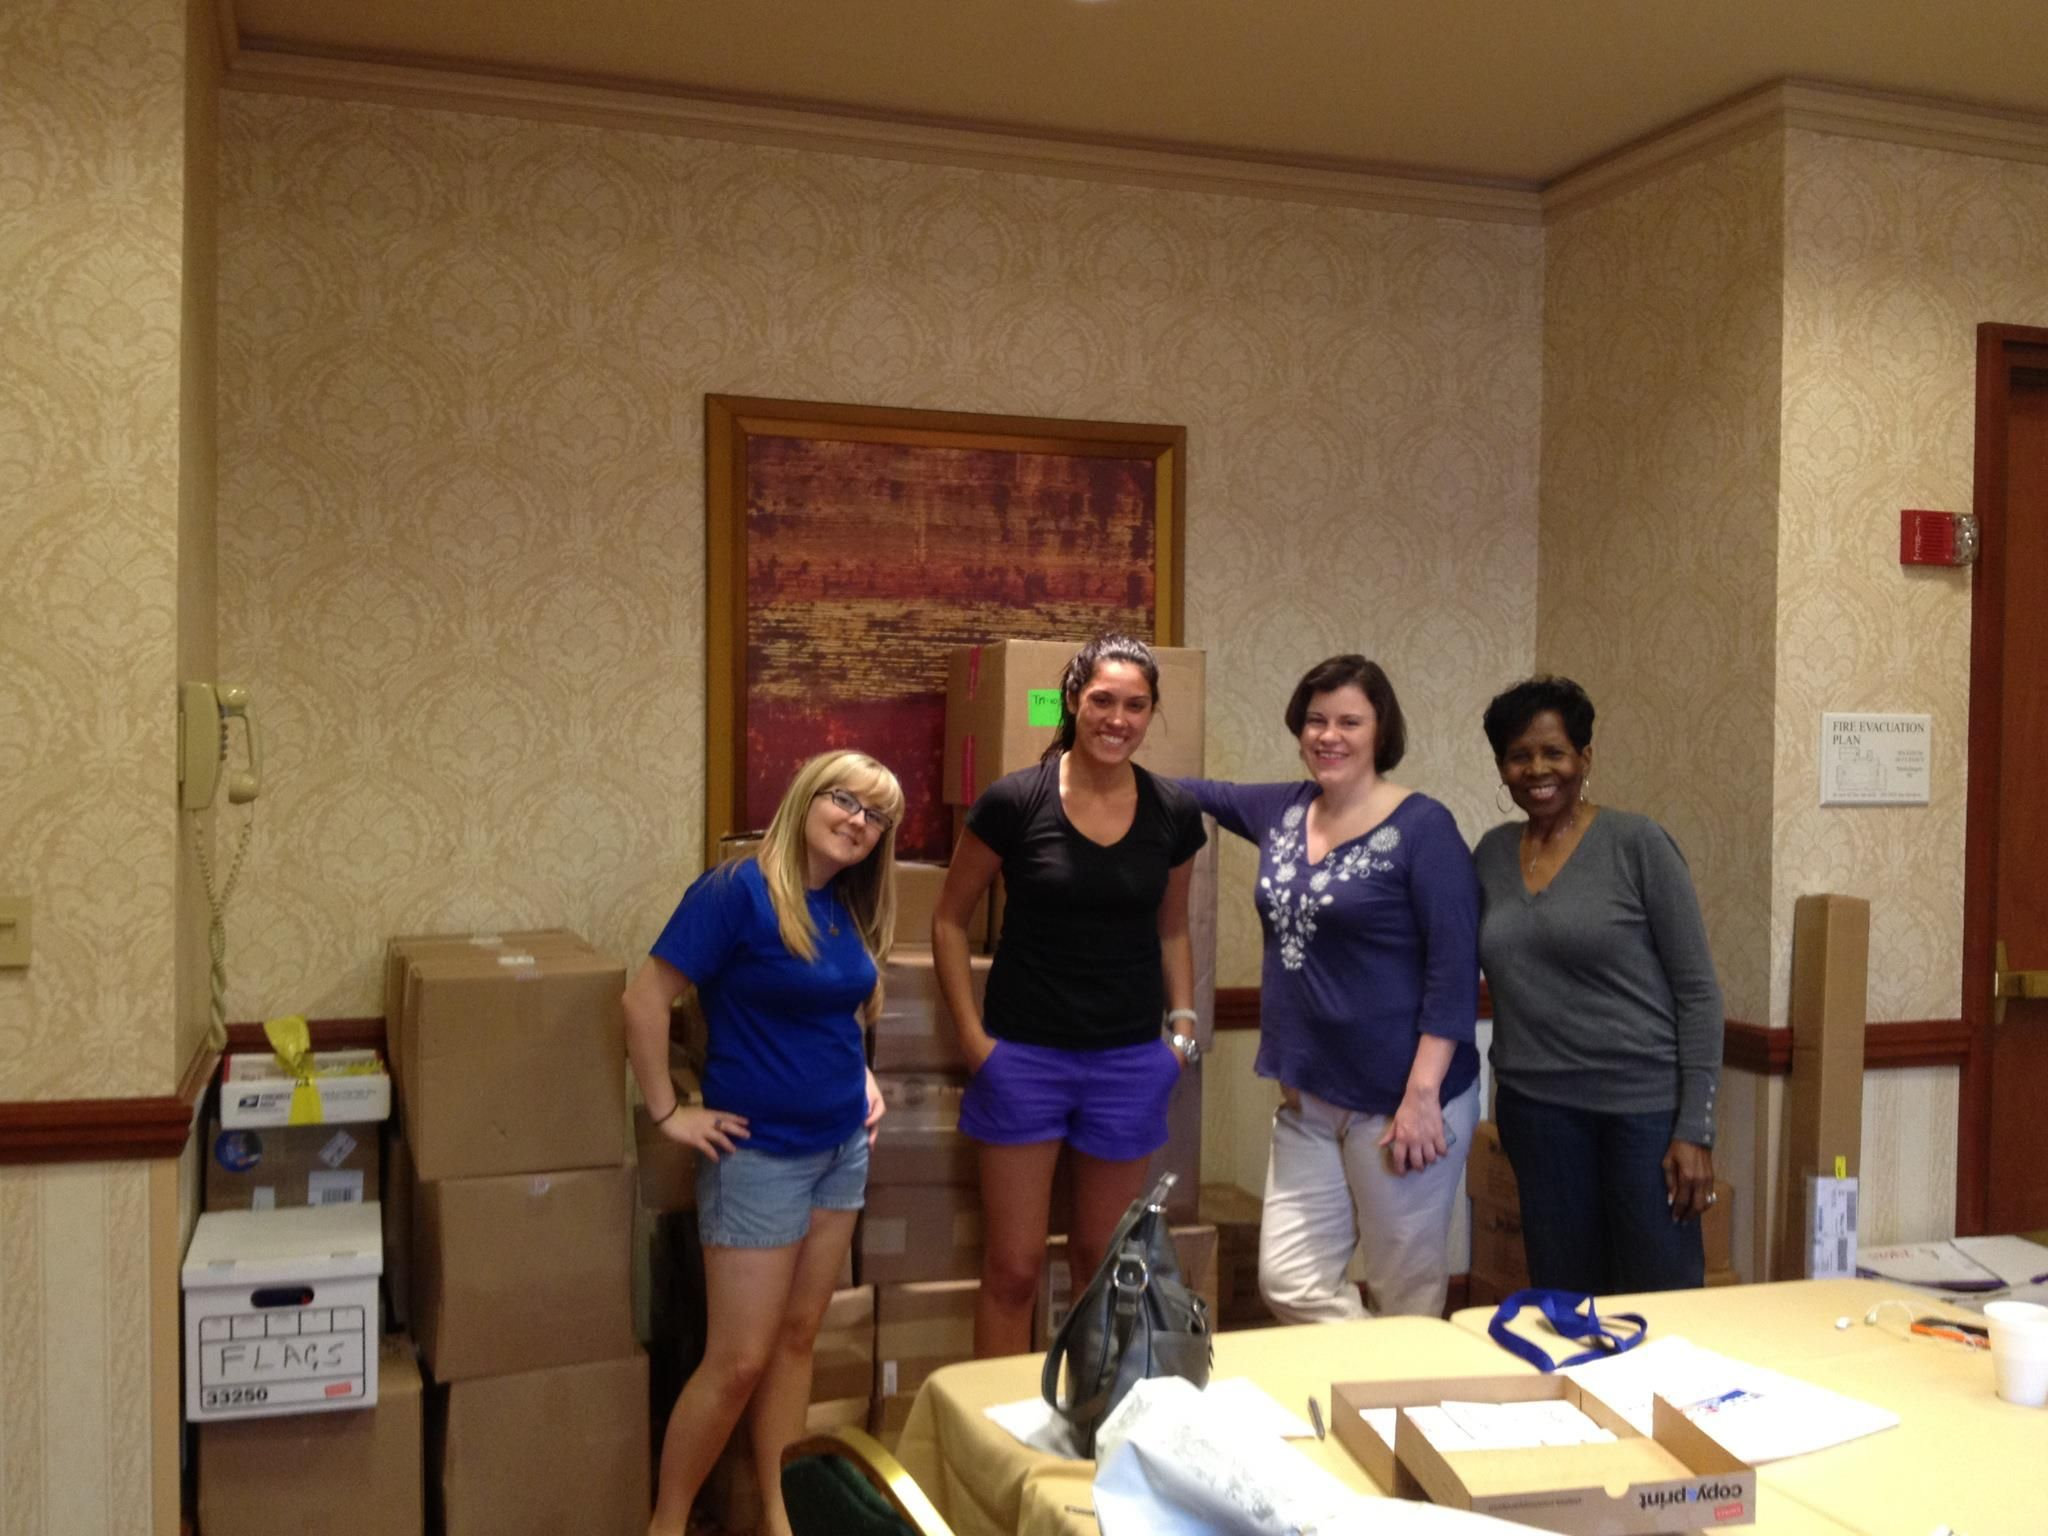 Setting up the staff room at the hotel